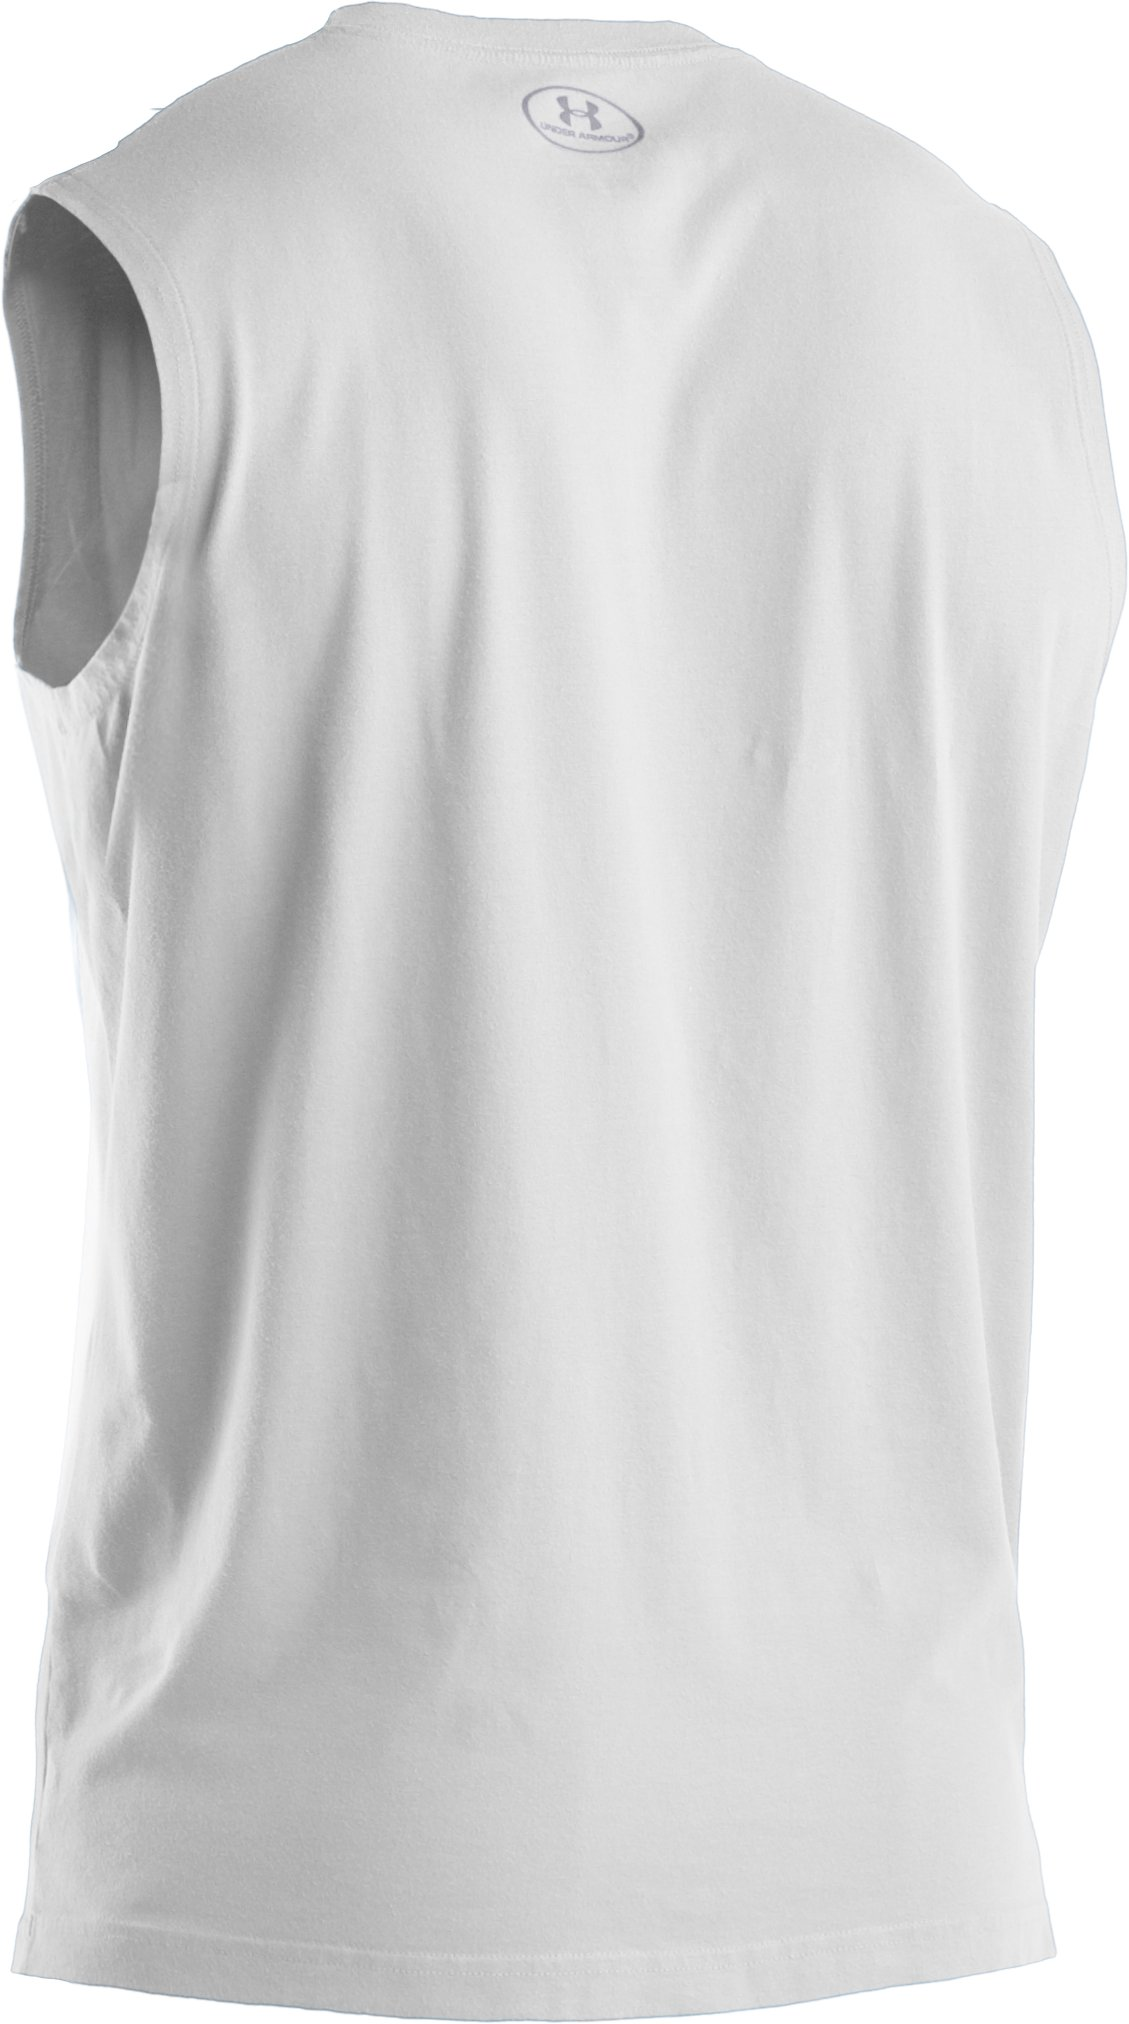 Men's Charged Cotton® Sleeveless T-shirt, White